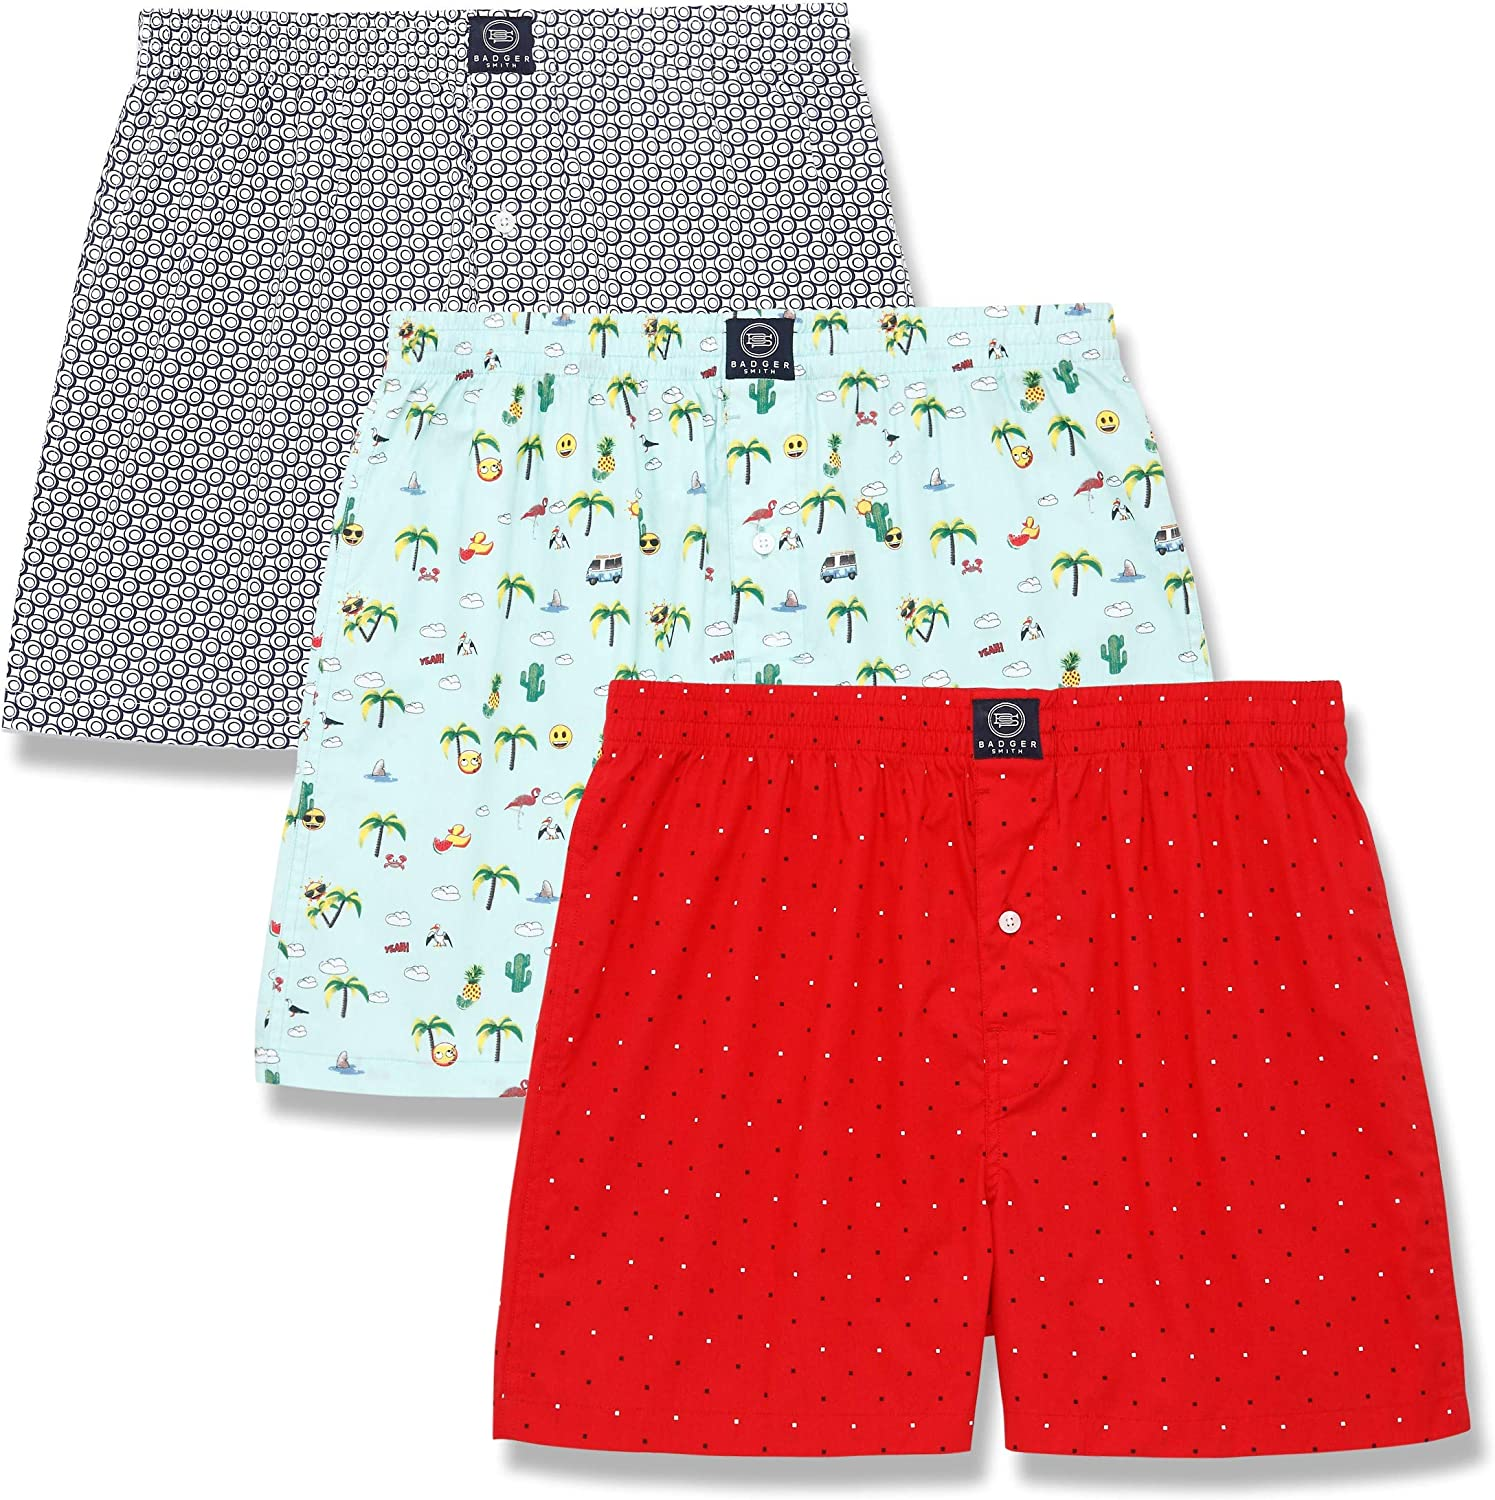 Badger Smith Mens 5 Pack and 3 Pack 100/% Cotton Print Multicolor Boxer Shorts